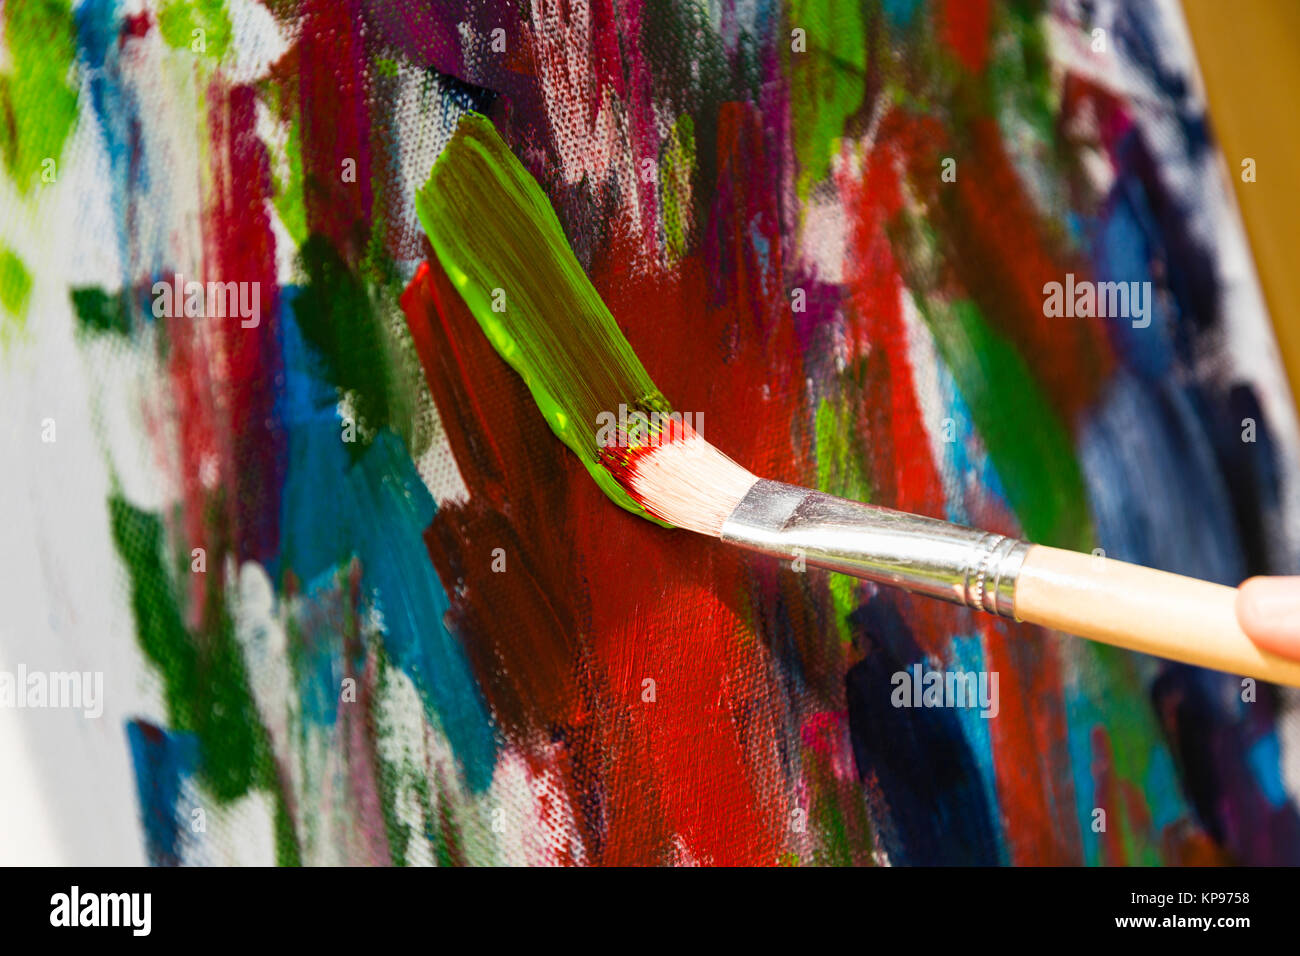 Acrylfarben stock photos acrylfarben stock images alamy - Malen mit acryl auf leinwand ...